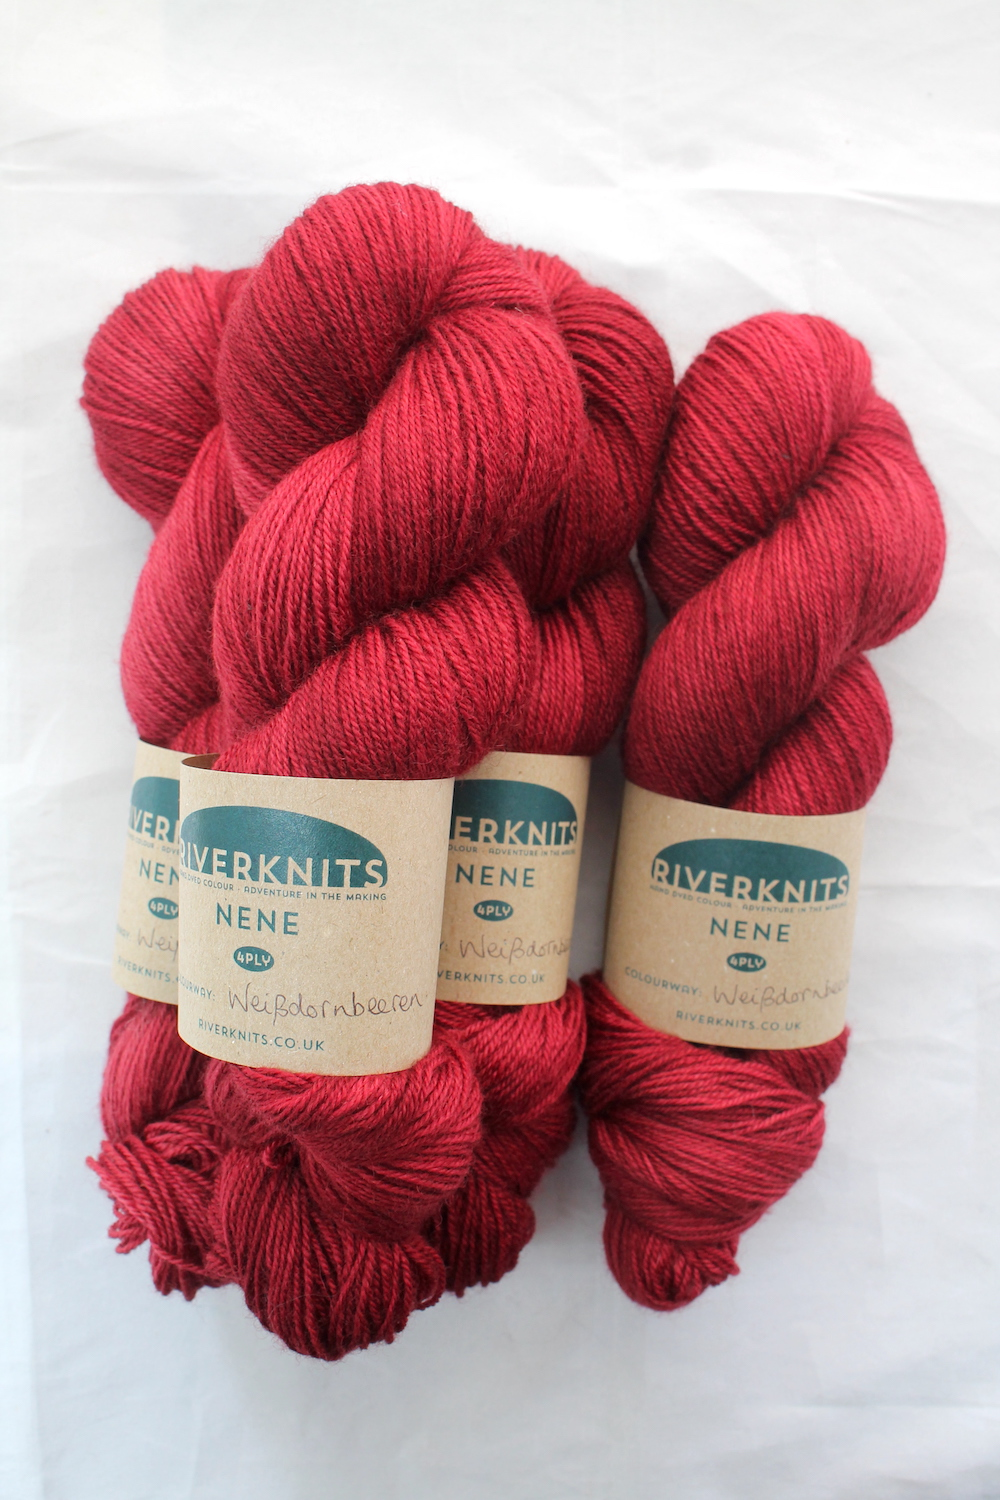 Weißdornbeeren skeins dyed in a deep rich red